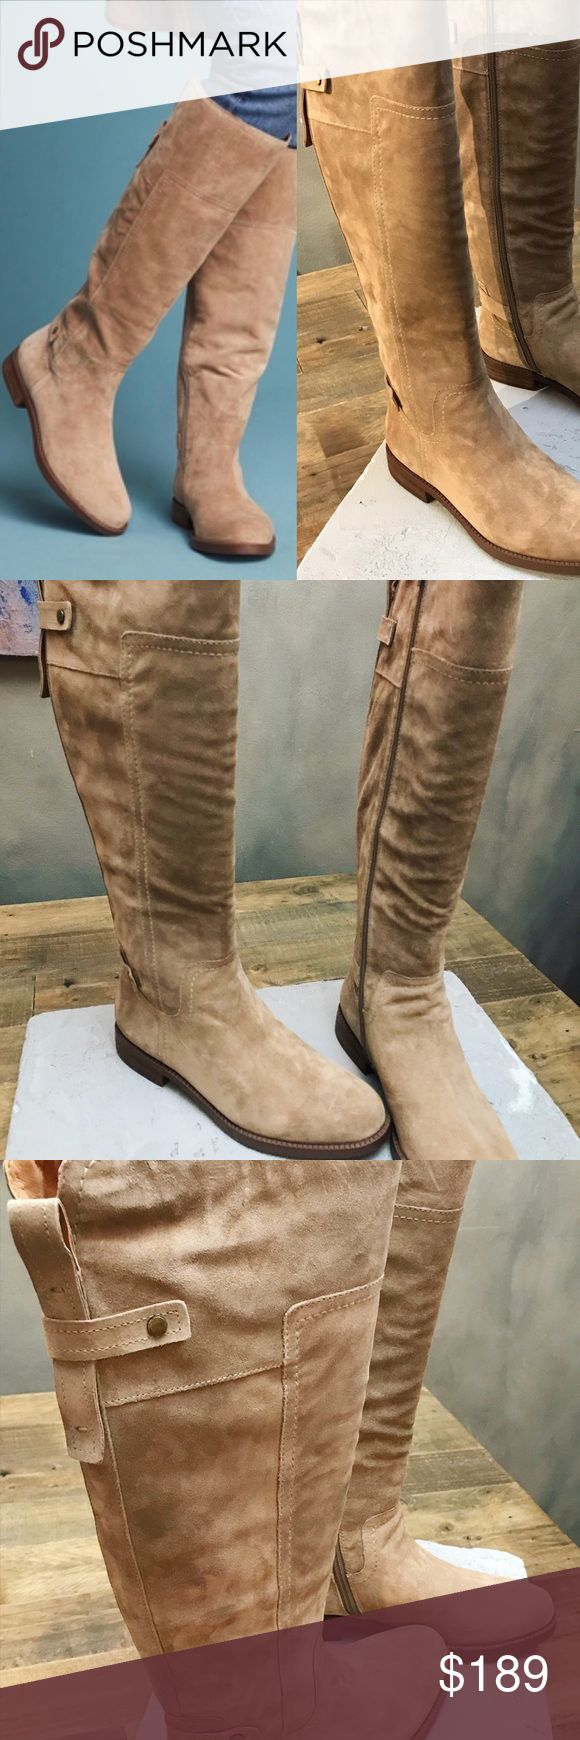 Anthropologie Sarto Franco Coley Riding boots sand Anthropologie Sarto by Franco Sarto Coley riding boots. Sand color suede. Flat soft and very comfortable.  New in box. Franco Sarto  Knee high riding boots Suede  Color: Sand Anthropologie Anthropologie Shoes Winter & Rain Boots